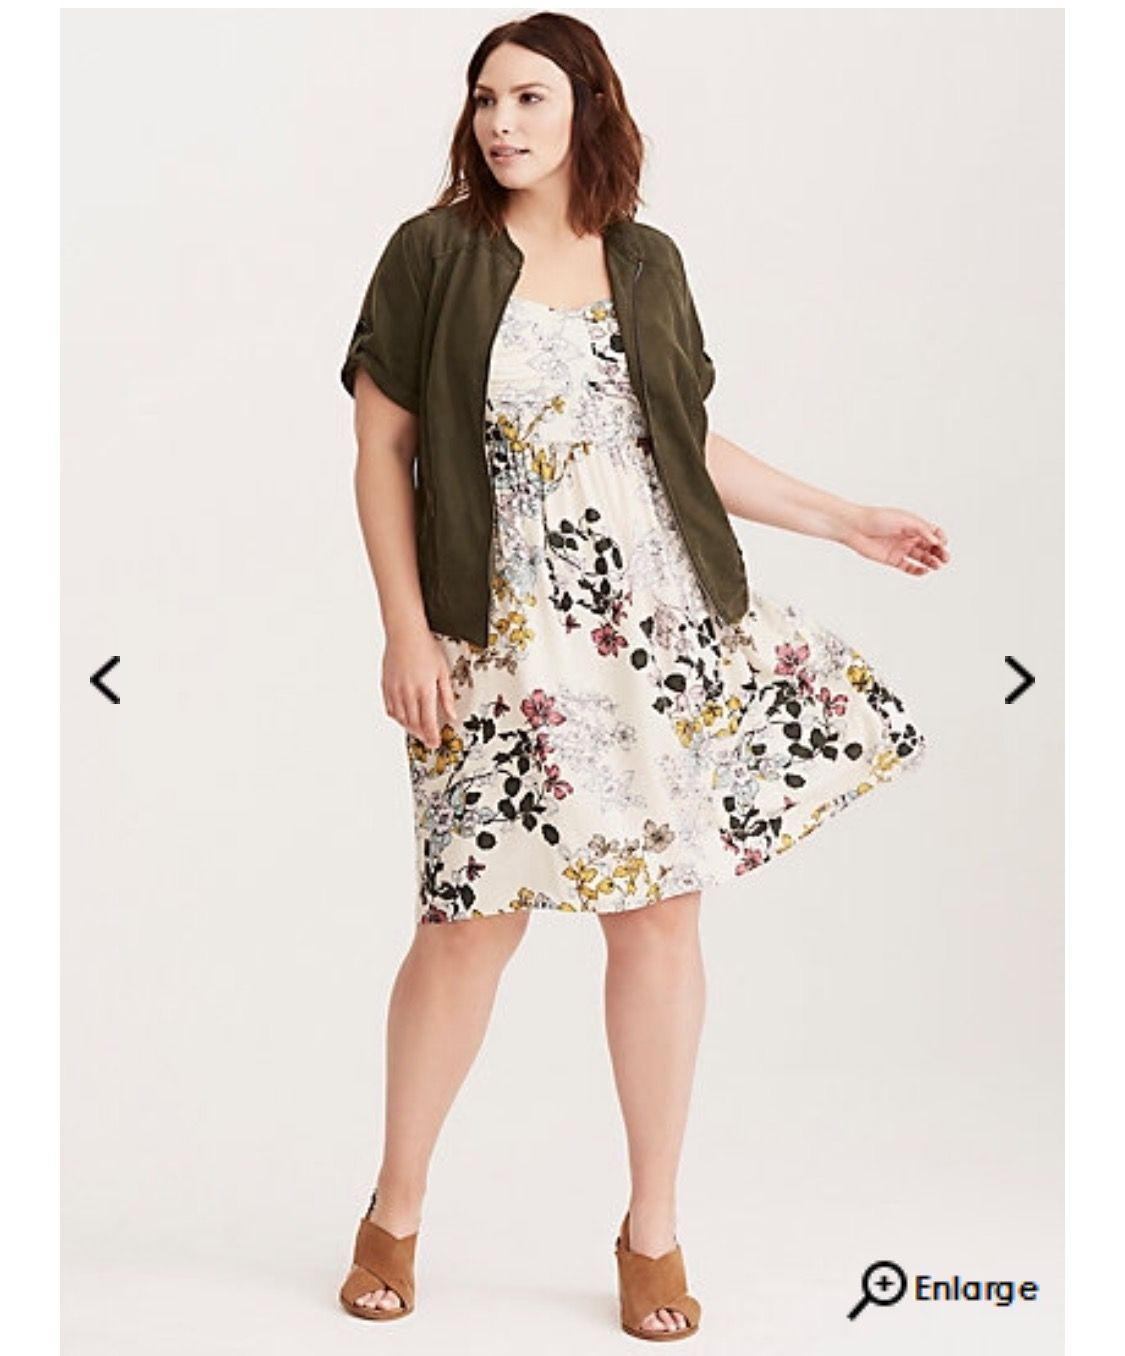 403f2d31e8b Torrid - Floral Print Bow Front Challis Sundress (2nd look w olive sweater)